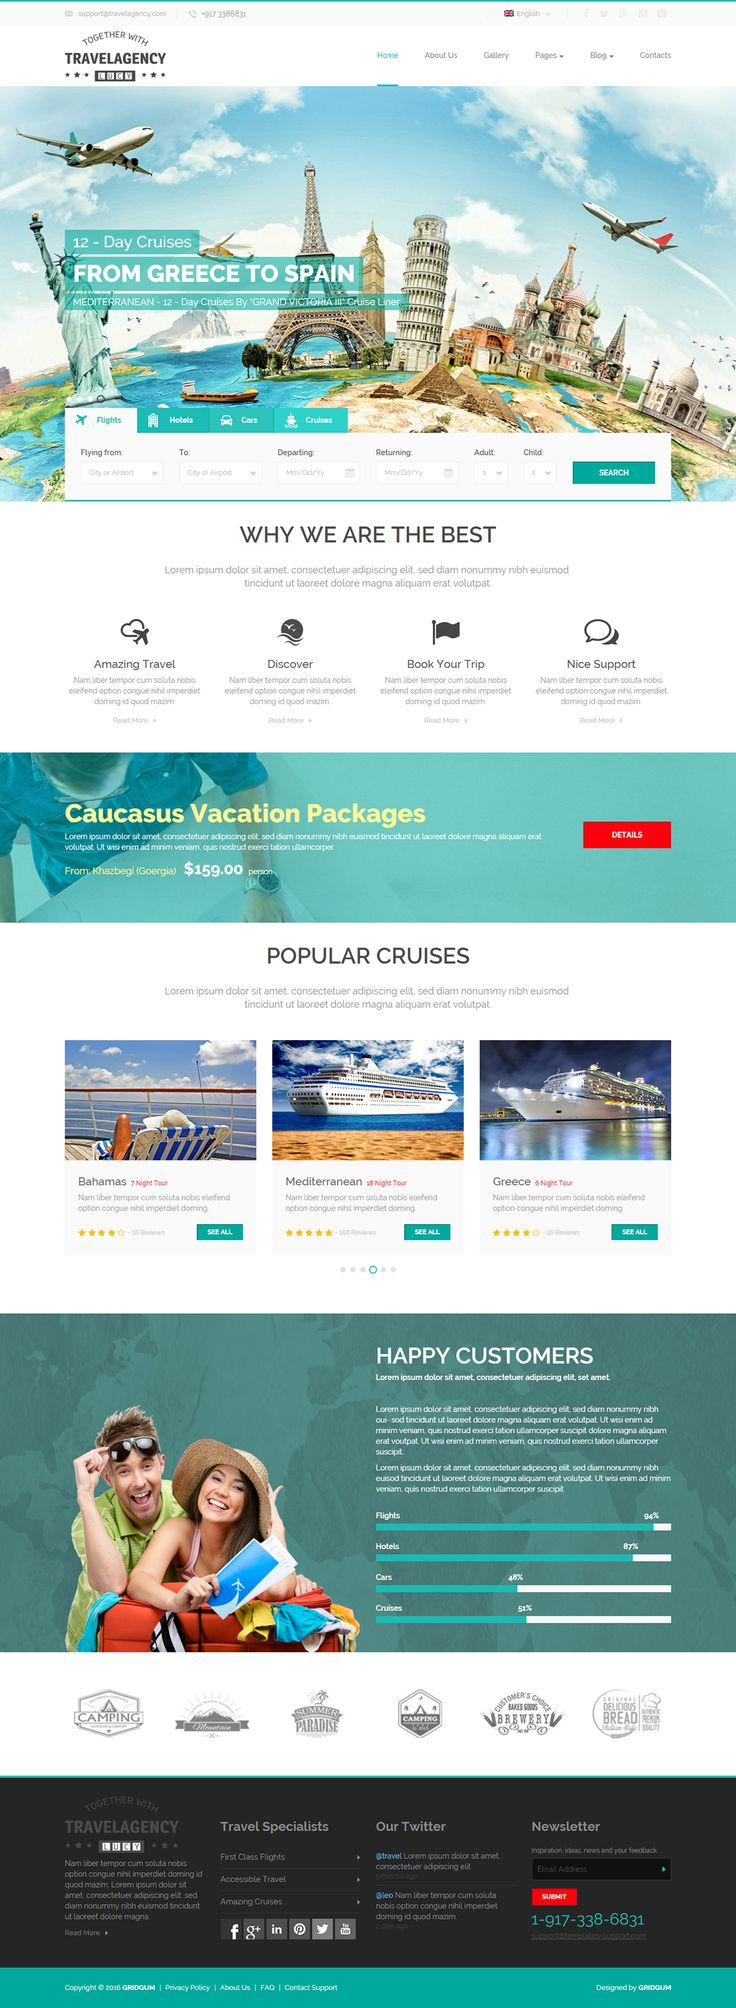 7 best pages images on Pinterest | Travel agency website, Travel ...